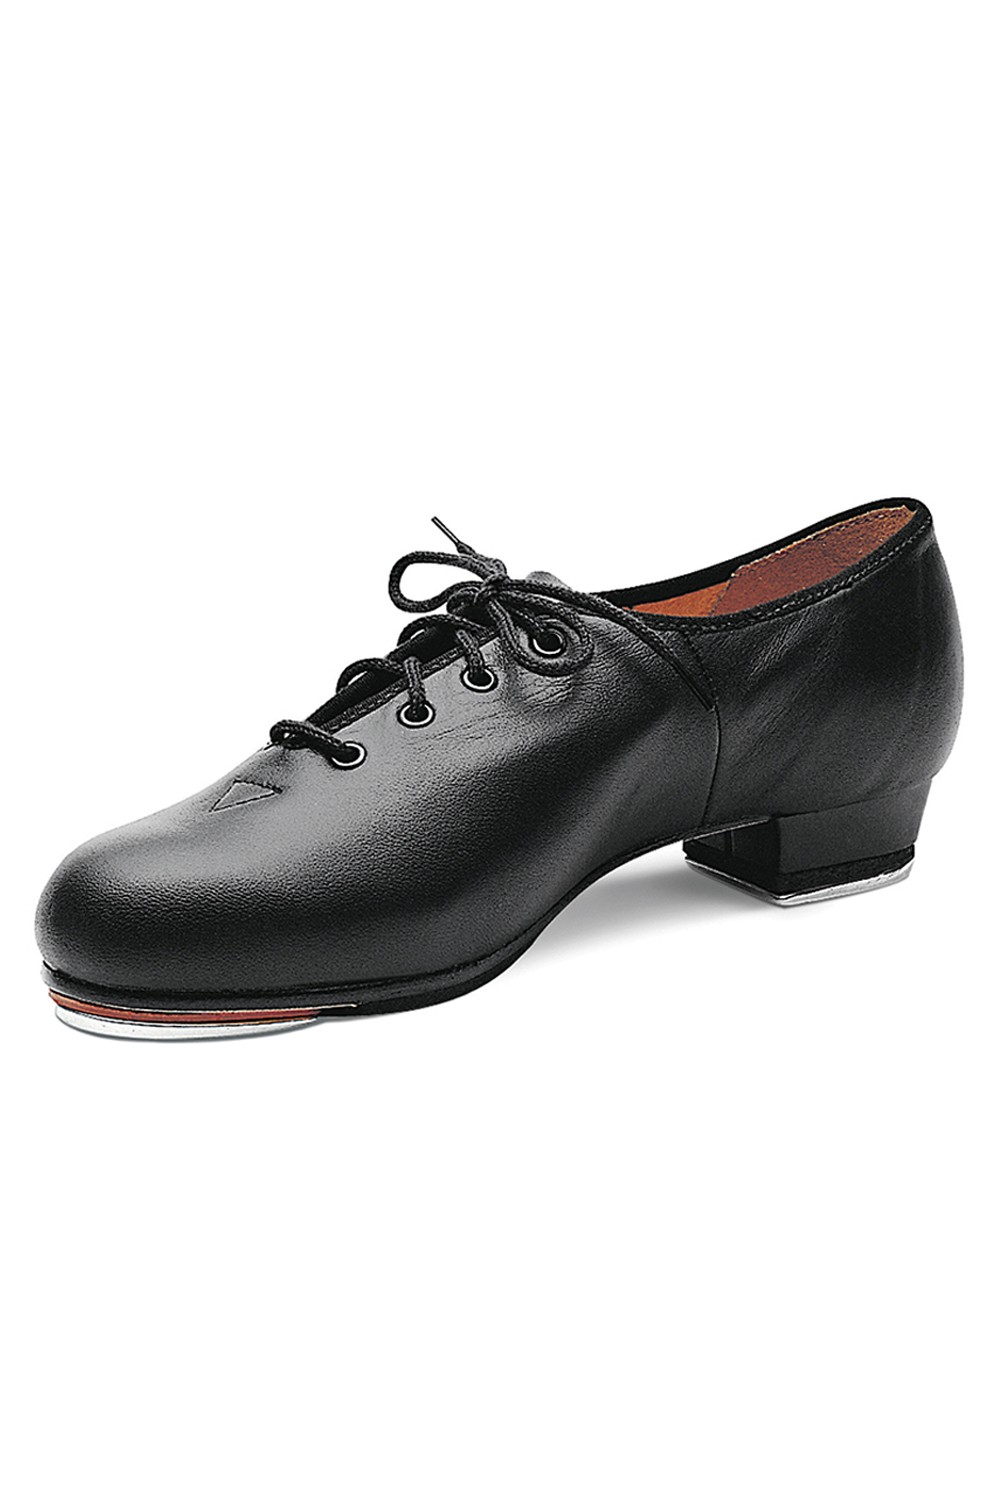 Jazz Tap - Ragazze  Girl's Tap Shoes